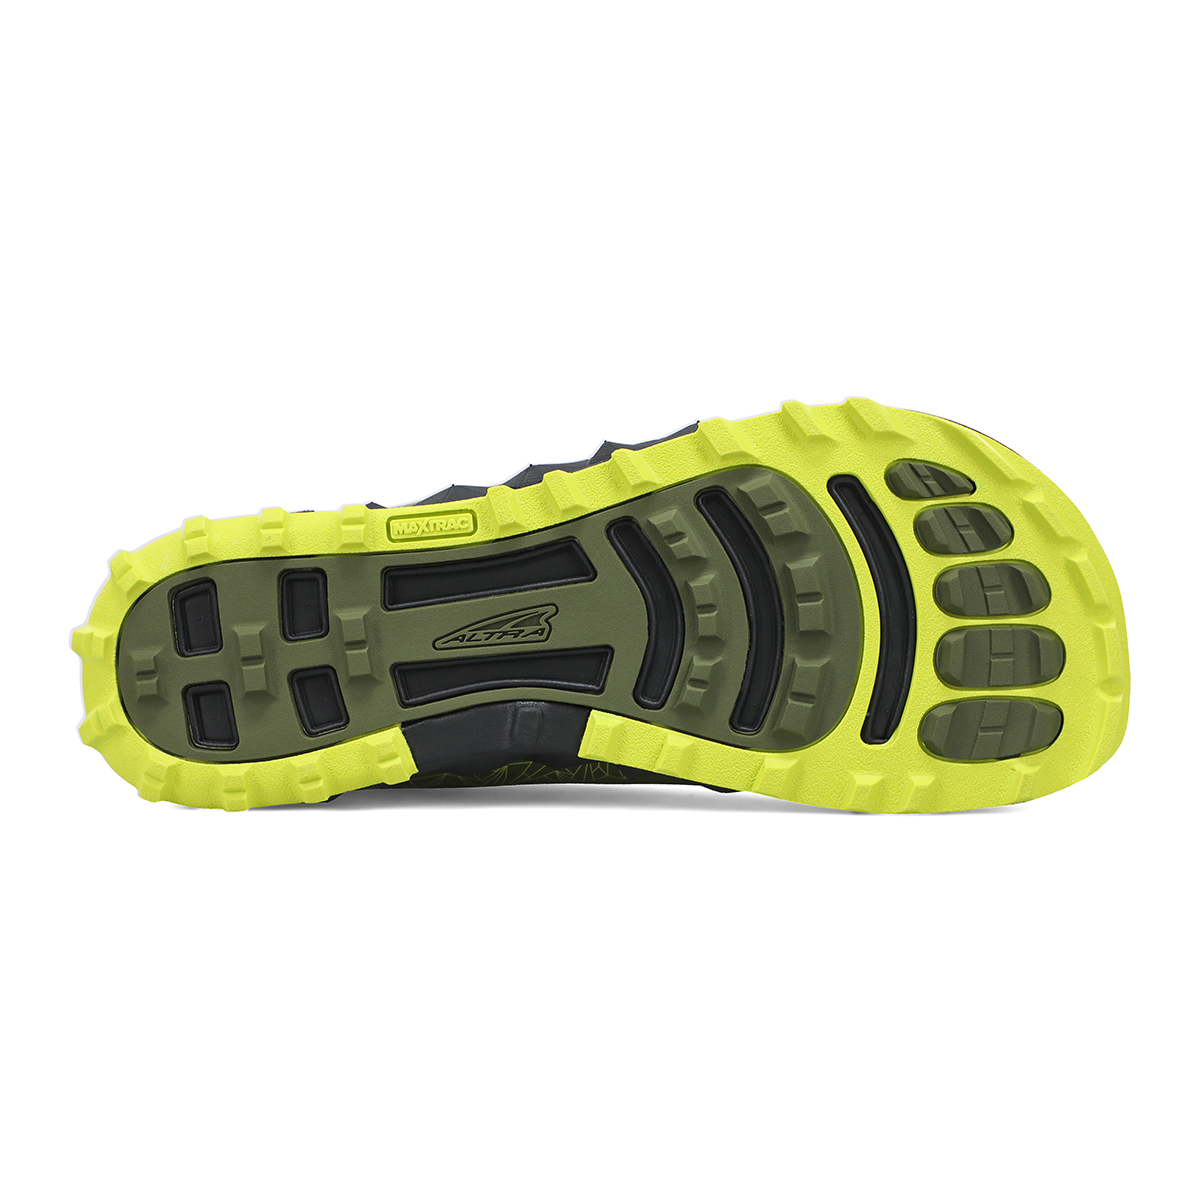 Men's Altra Superior 4.5 Trail Running Shoe - Color: Green/Lime - Size: 7 - Width: Regular, Green/Lime, large, image 4